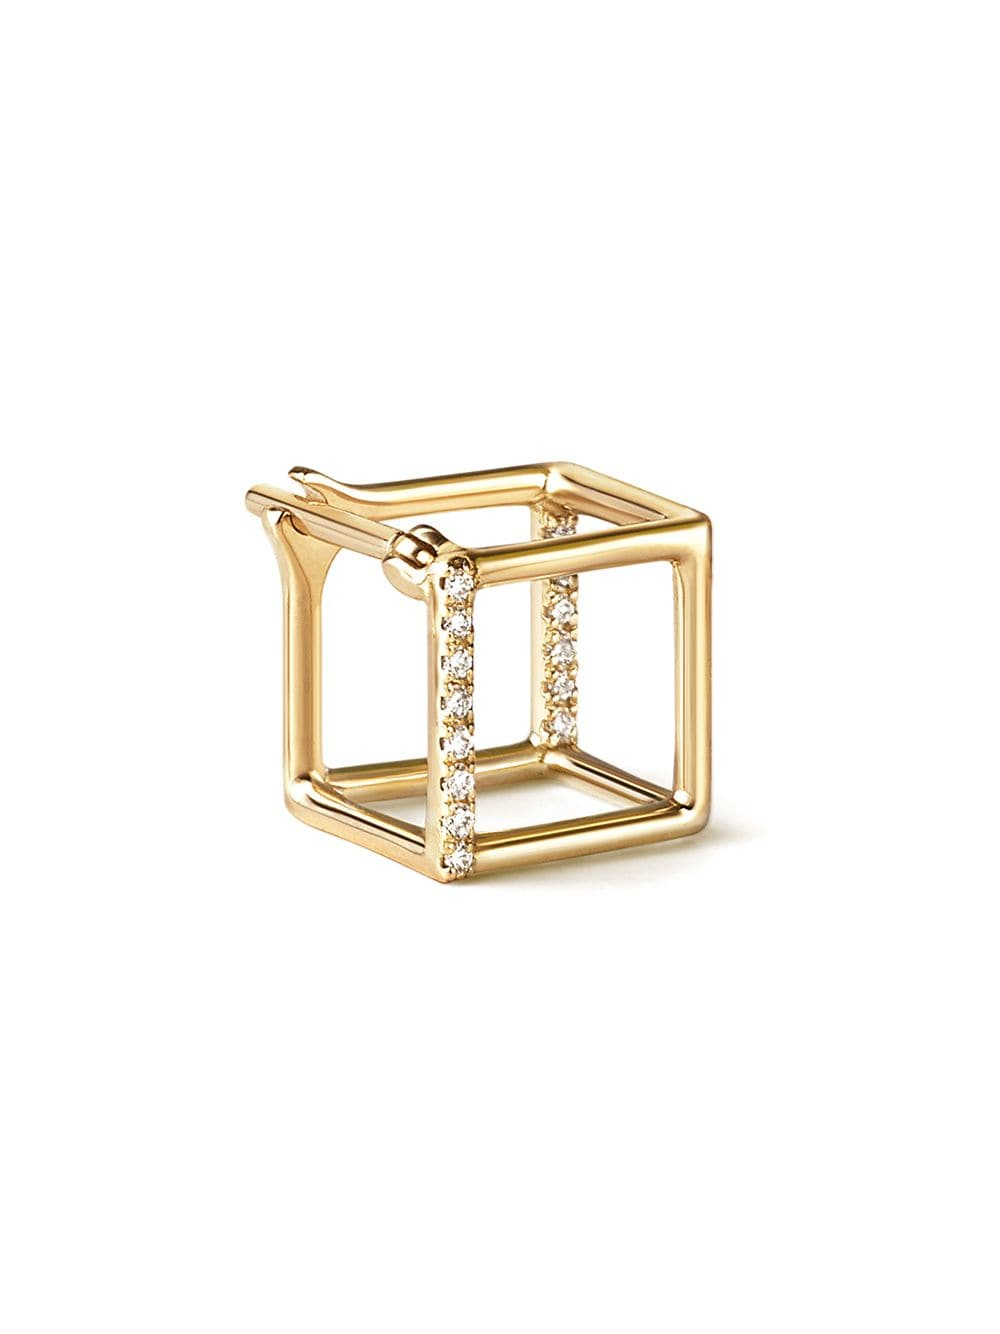 Shihara Diamond Square Earring 7 (01) - Metallic von Shihara